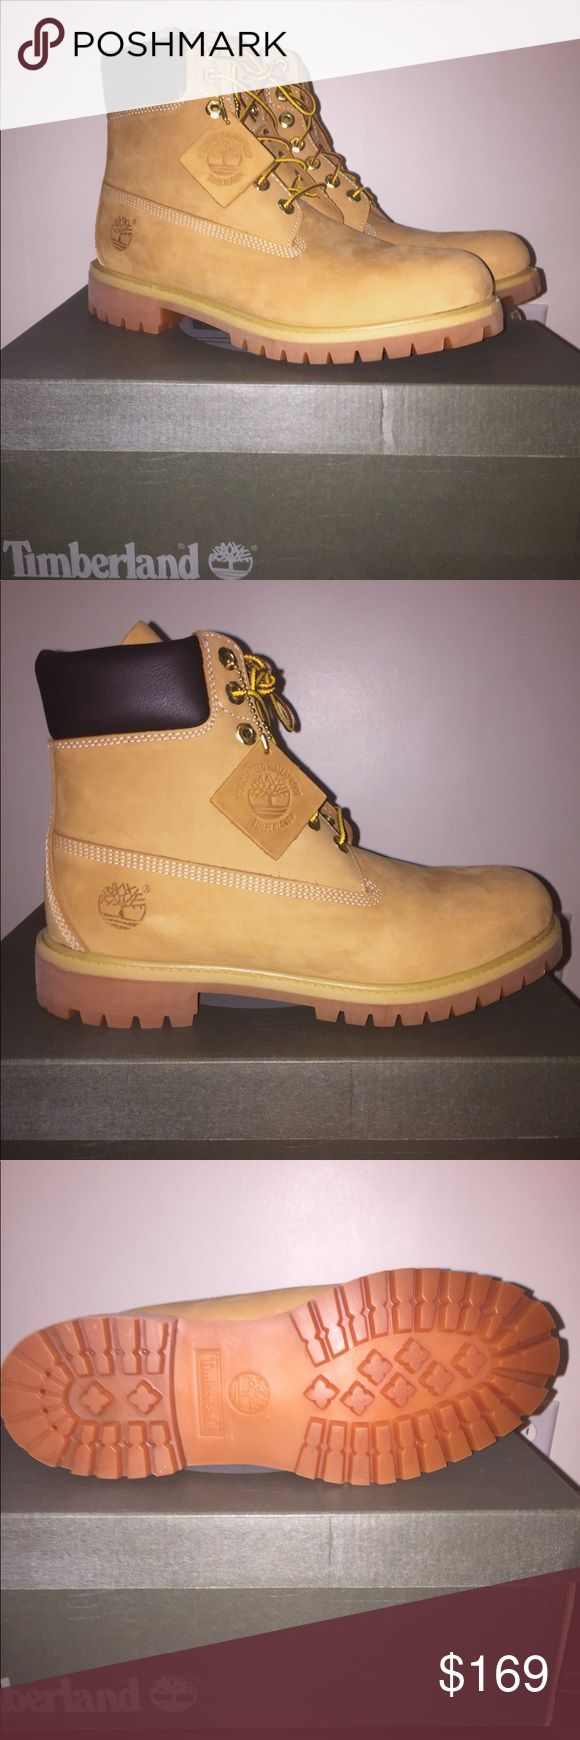 Make an offer! Wheat Timberland Boots Size 9 men's Brand new, never worn wheat colored Timberland Boots. Size 9 Men's. Only taken out of the box once to take pictures. 100% Waterproof. Great boots for work/wintertime. Will last a very long time! Shoes Boots